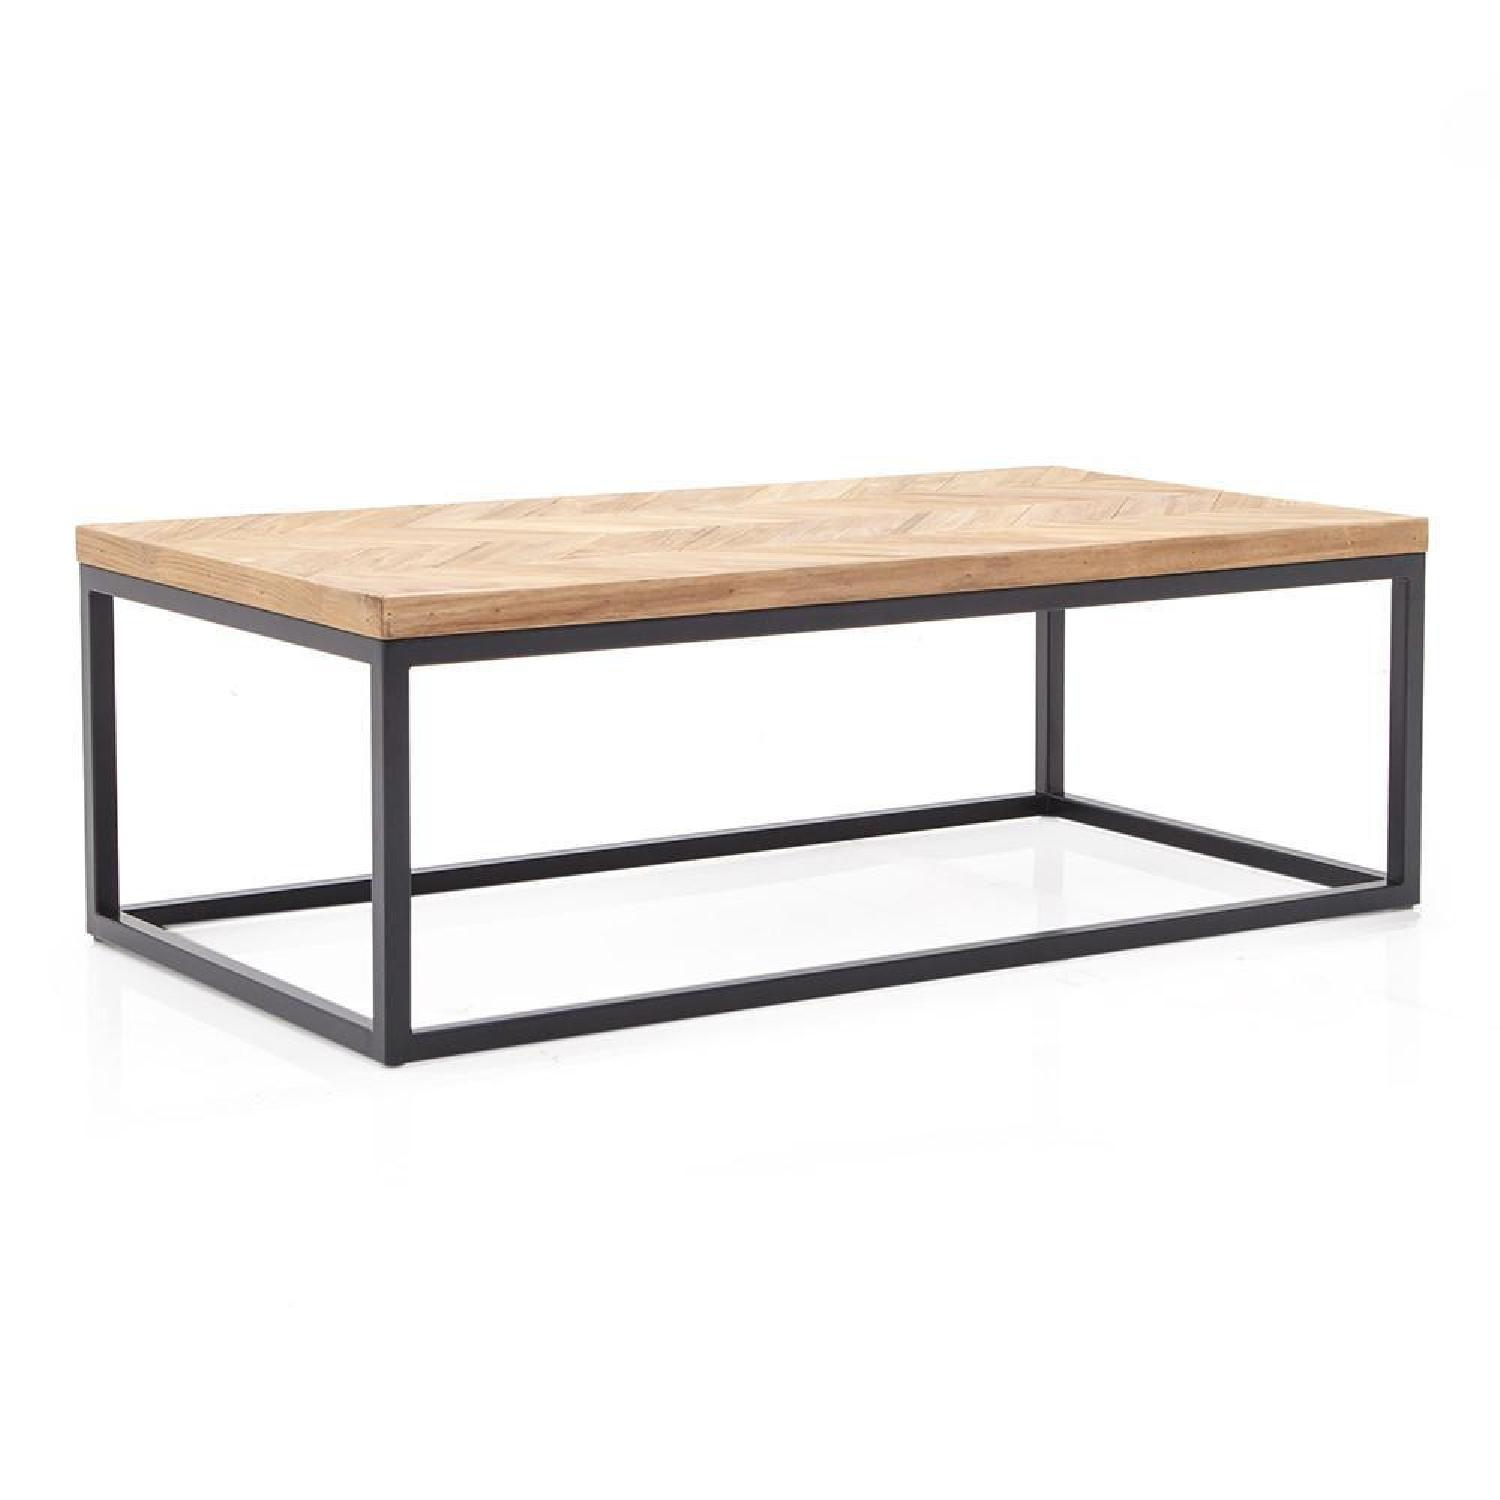 Crate & Barrel Dixon Coffee Table - image-1